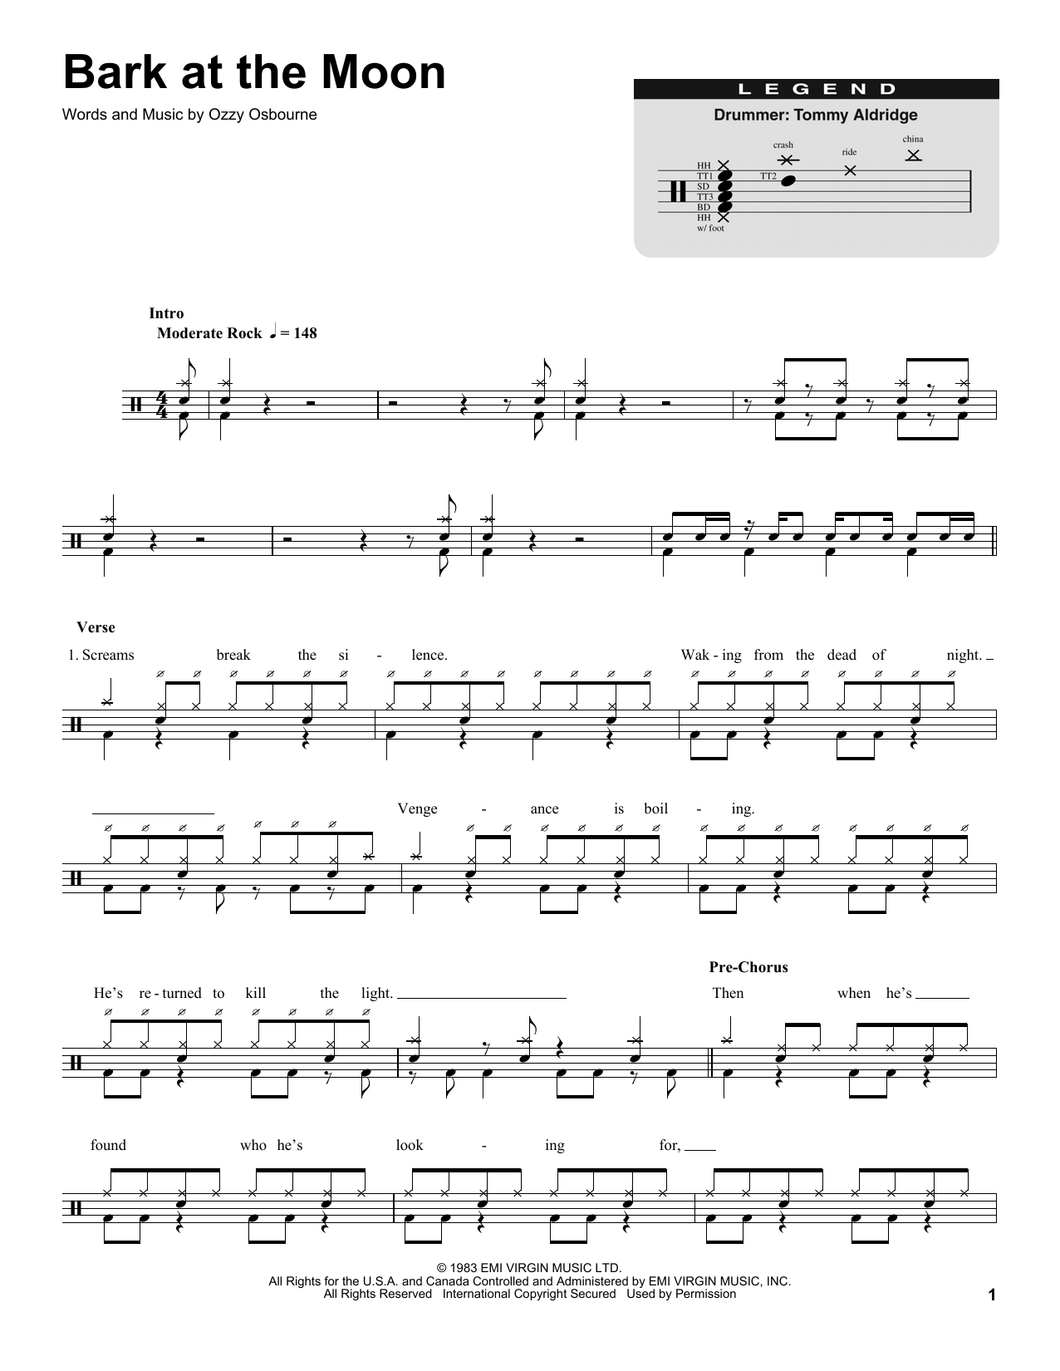 Bark At The Moon - Ozzy Osbourne - Full Drum Transcription / Drum Sheet Music - SheetMusicDirect DT